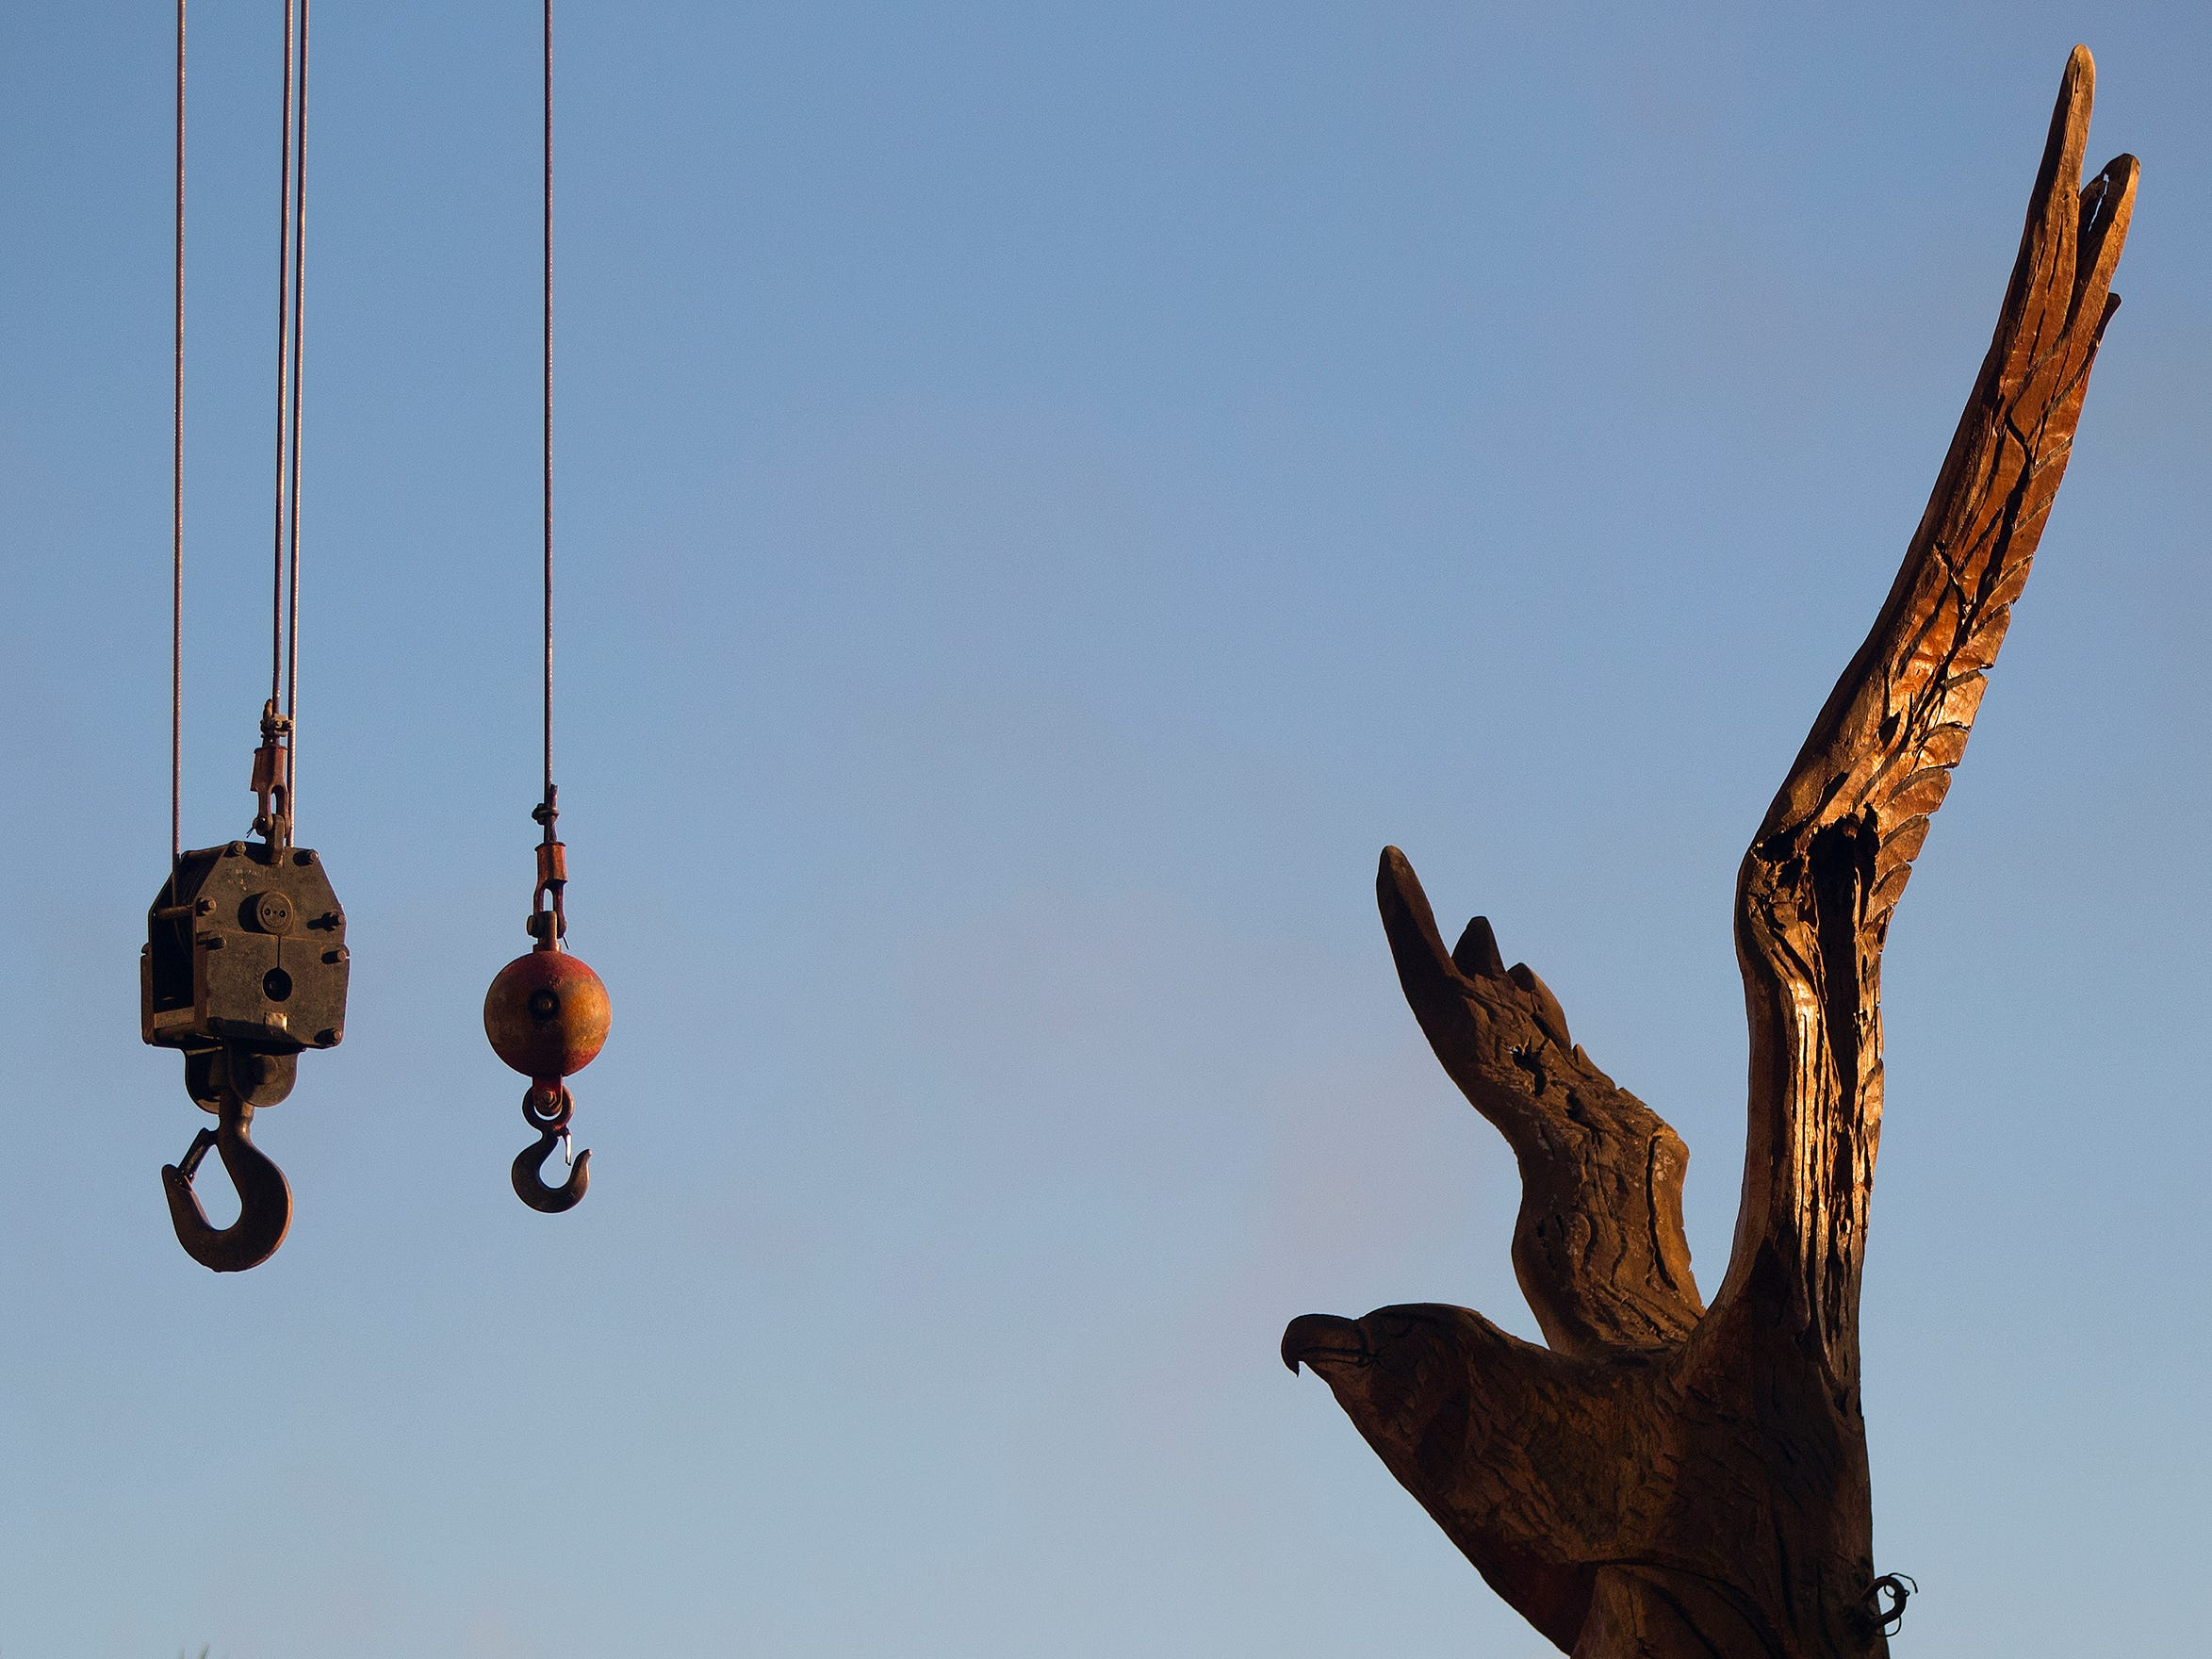 The Lee County Eagle Tree located in front of the Old Lee County Courthouse on Main Street in downtown Fort Myers was removed on Saturday. Lee County's Department of Facilities, Construction & Management is renovating the Eagle Tree to preserve and protect it from environmental impacts. The renovations will be completed off site at a Lee County facility. Project completion is expected within about six months. The tree, which dates back to around 1900, has been a sculpture since 2011.